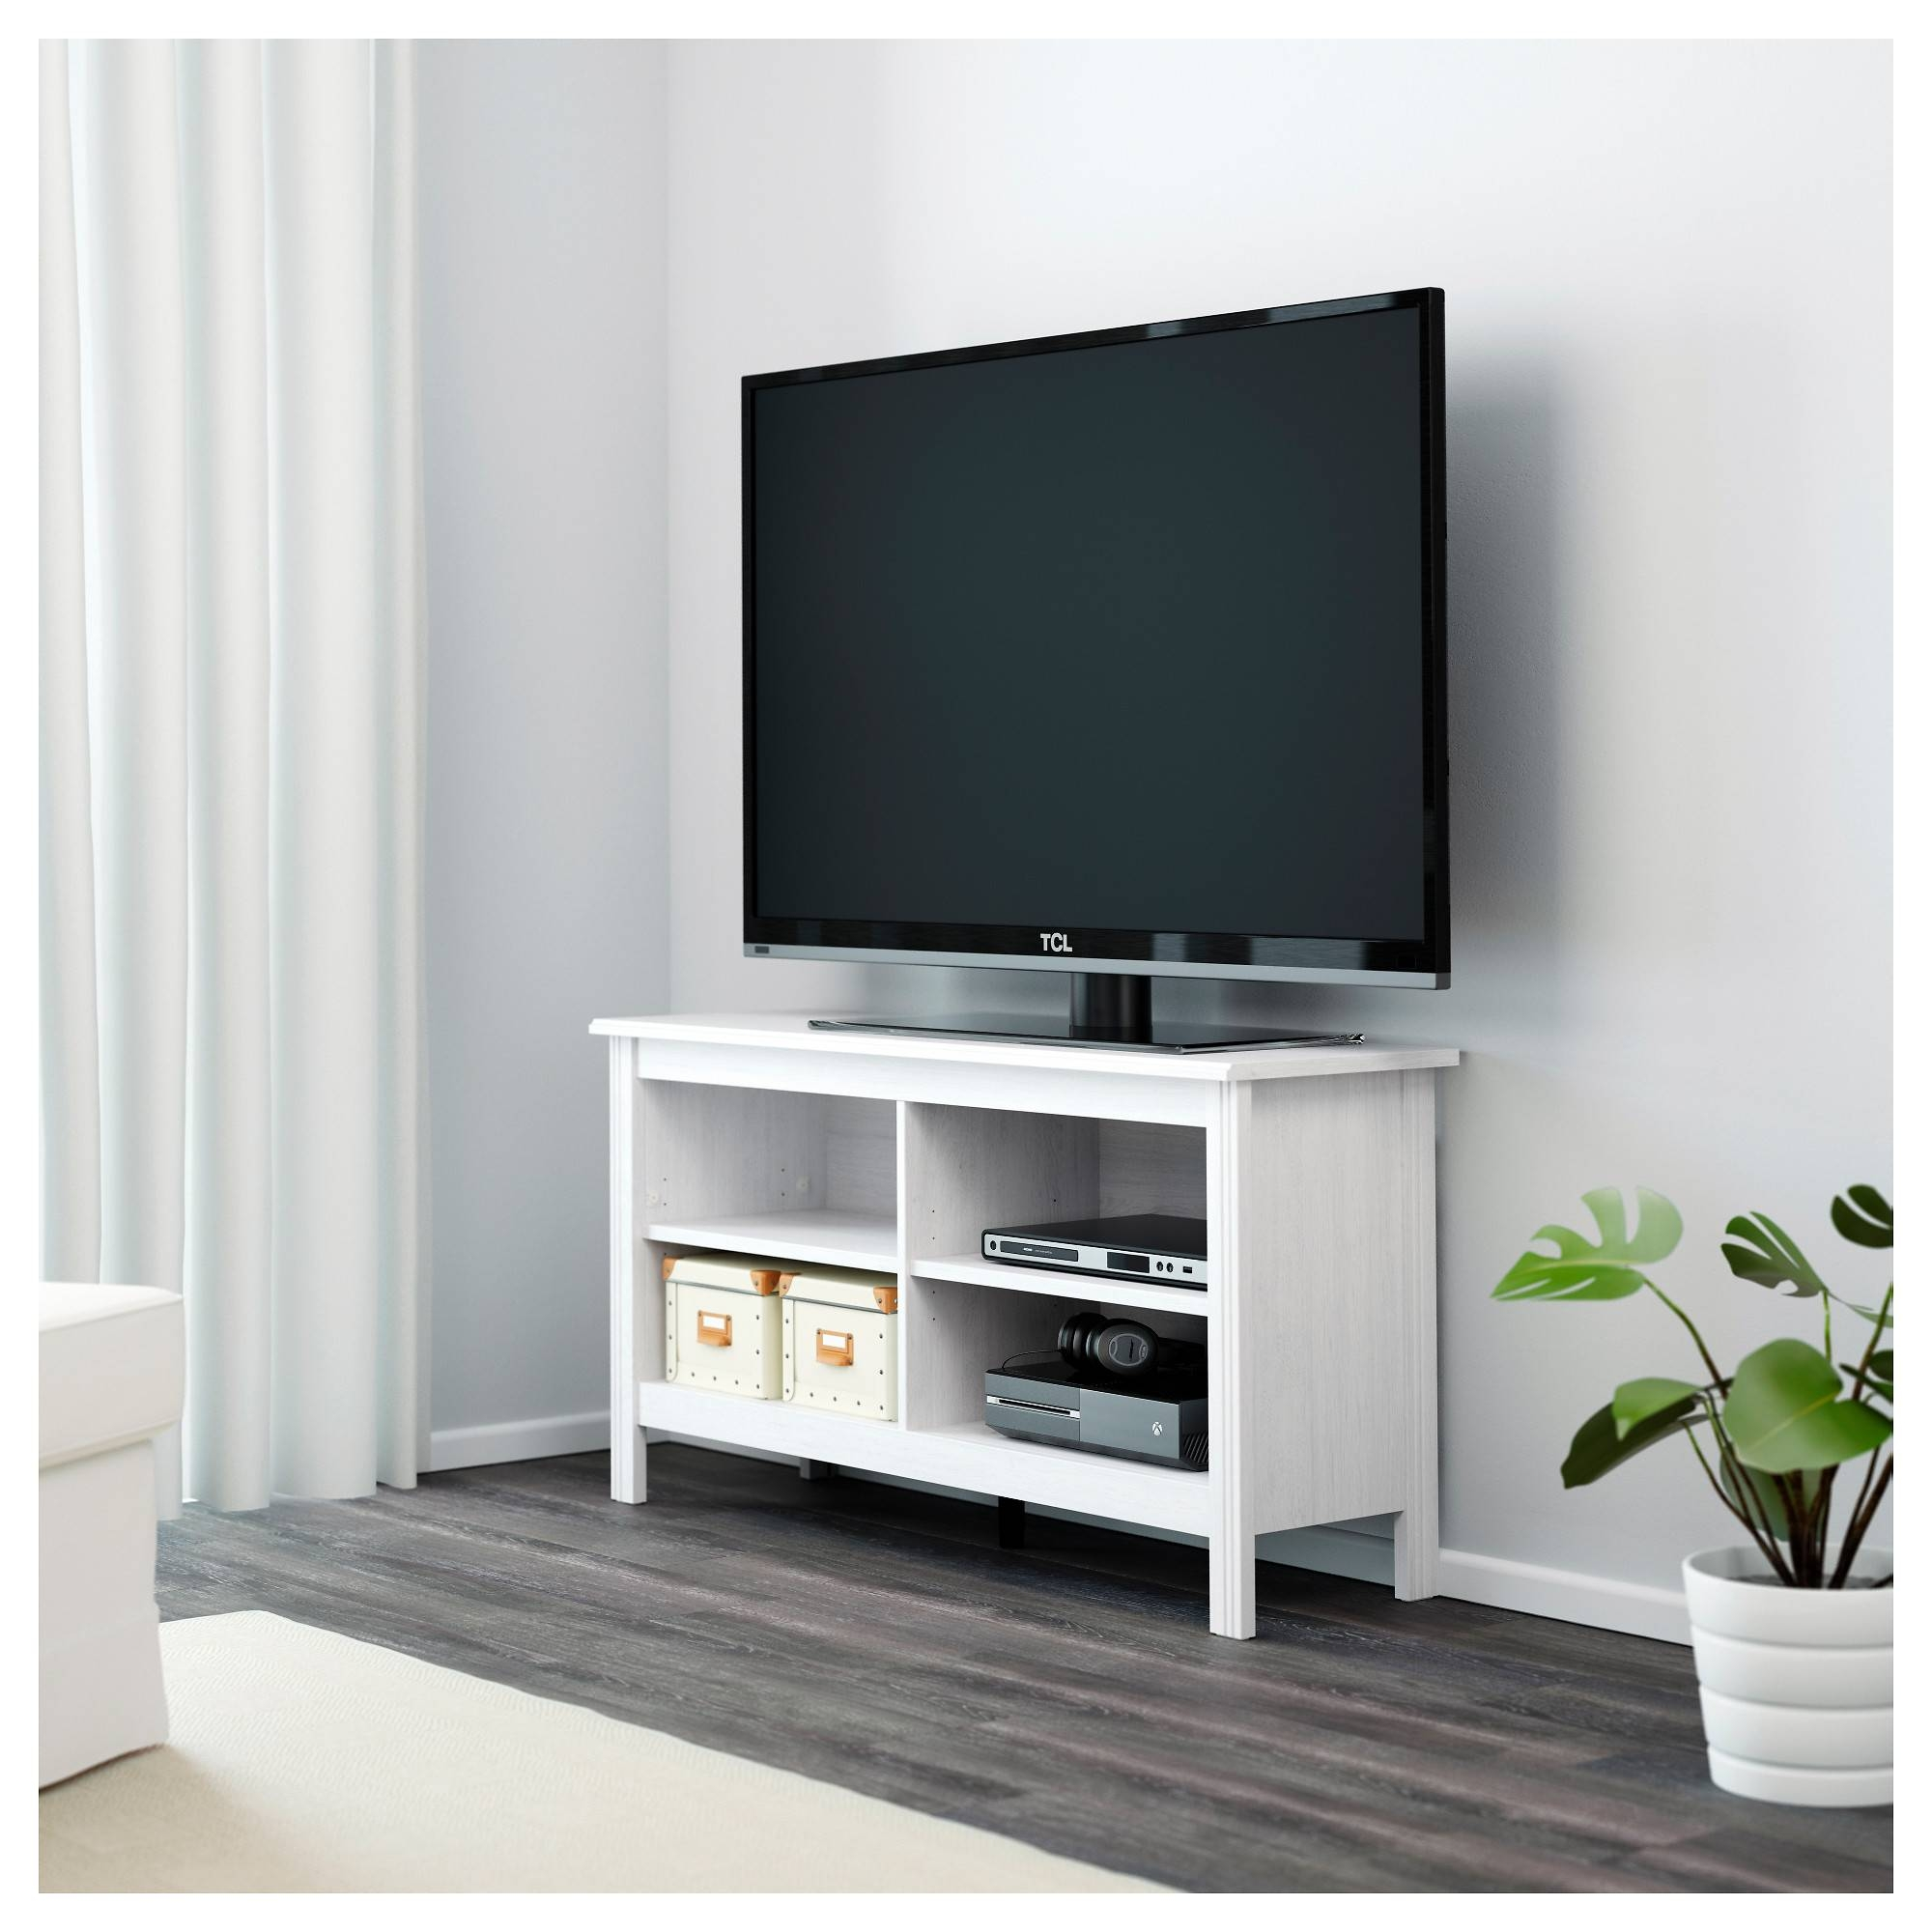 Brusali Tv Bench White 120x62 Cm – Ikea Intended For Small White Tv Stands (View 12 of 15)